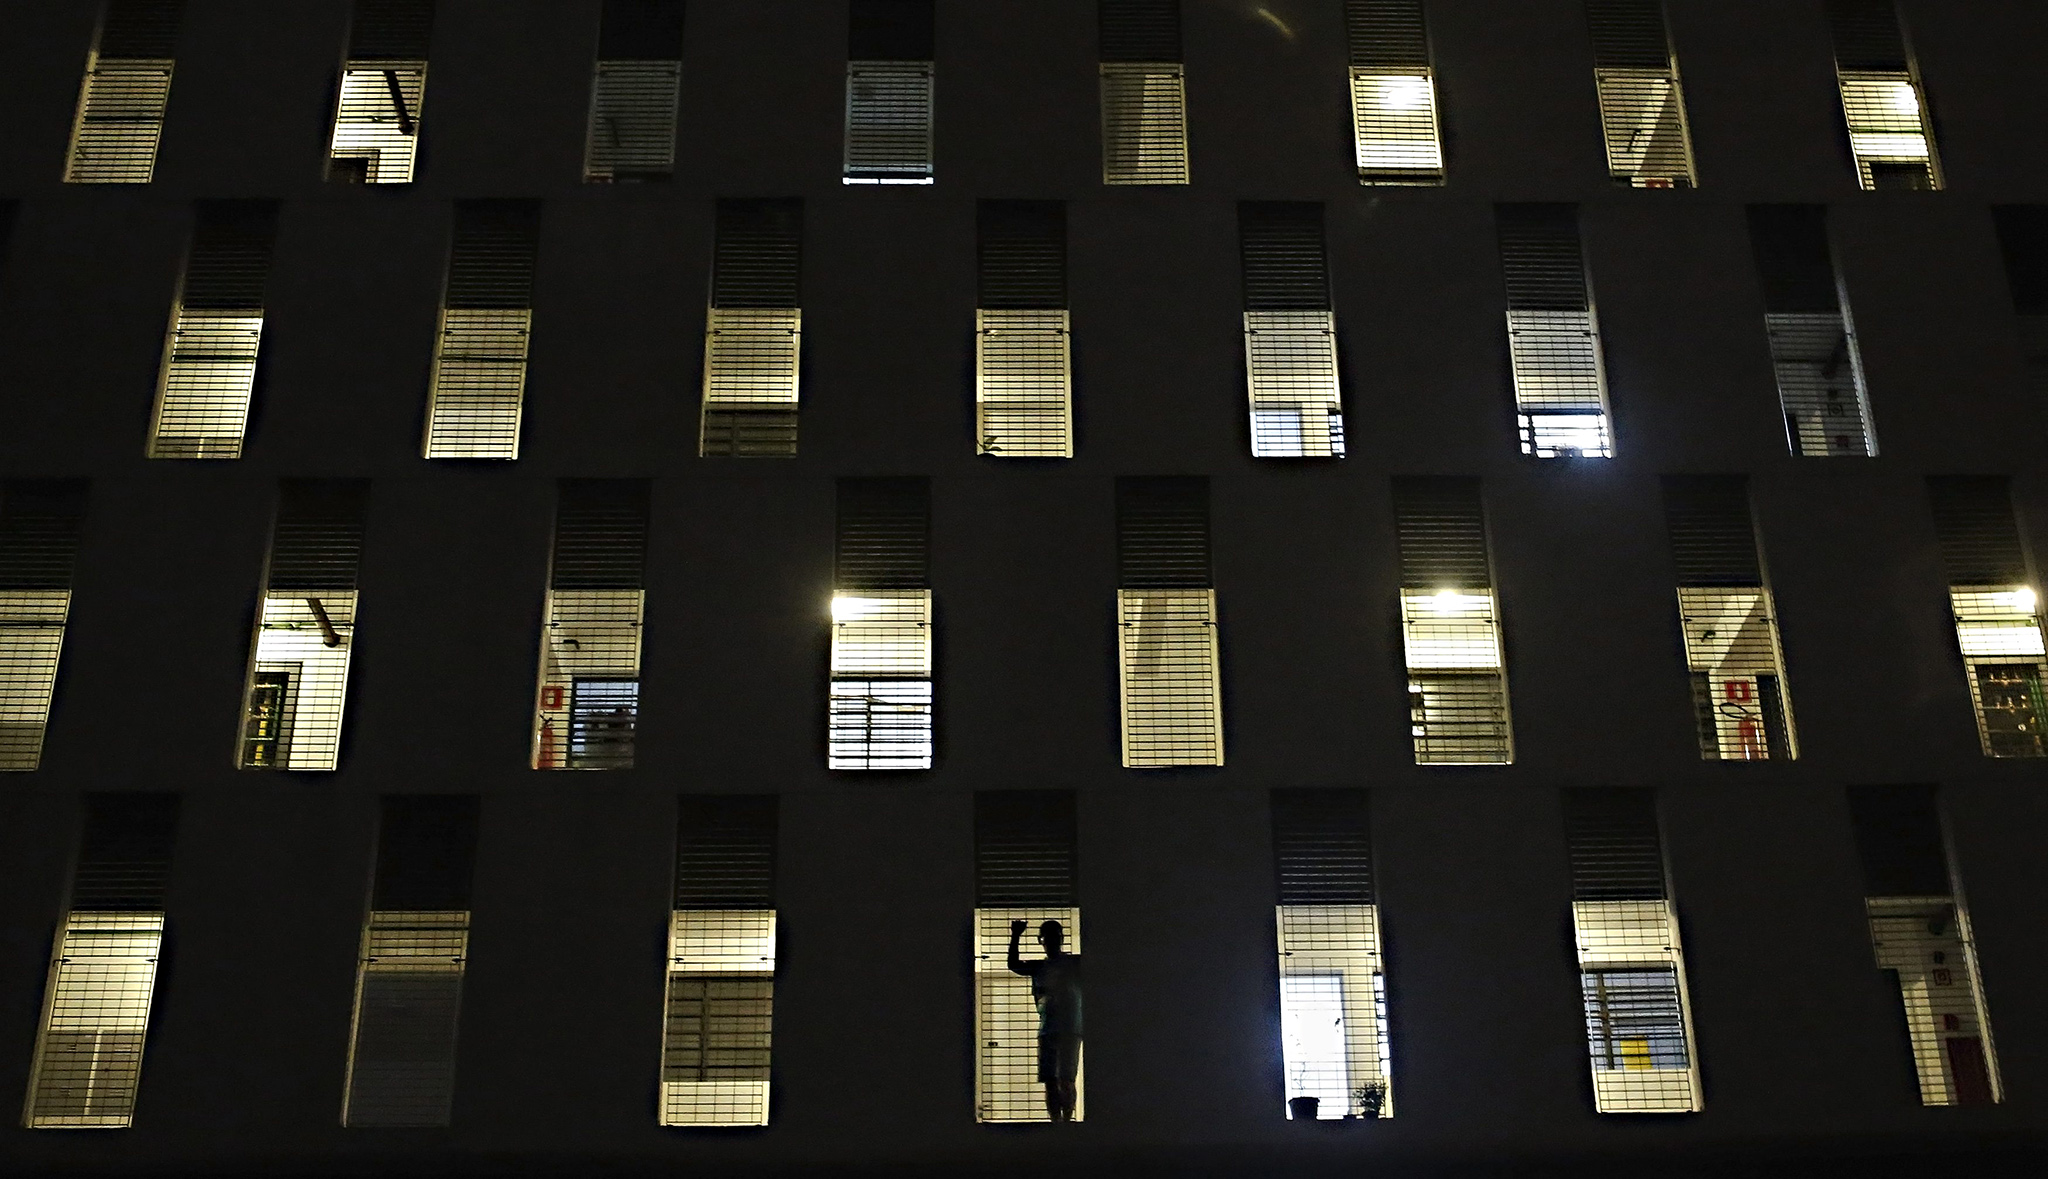 A man looks at members of Brazil's Homeless Workers' Movement (MTST) from his apartment during a protest against the World Cup in Sao Paulo. Brazilians opposed to the World Cup and the public funds spent on the construction of stadiums.